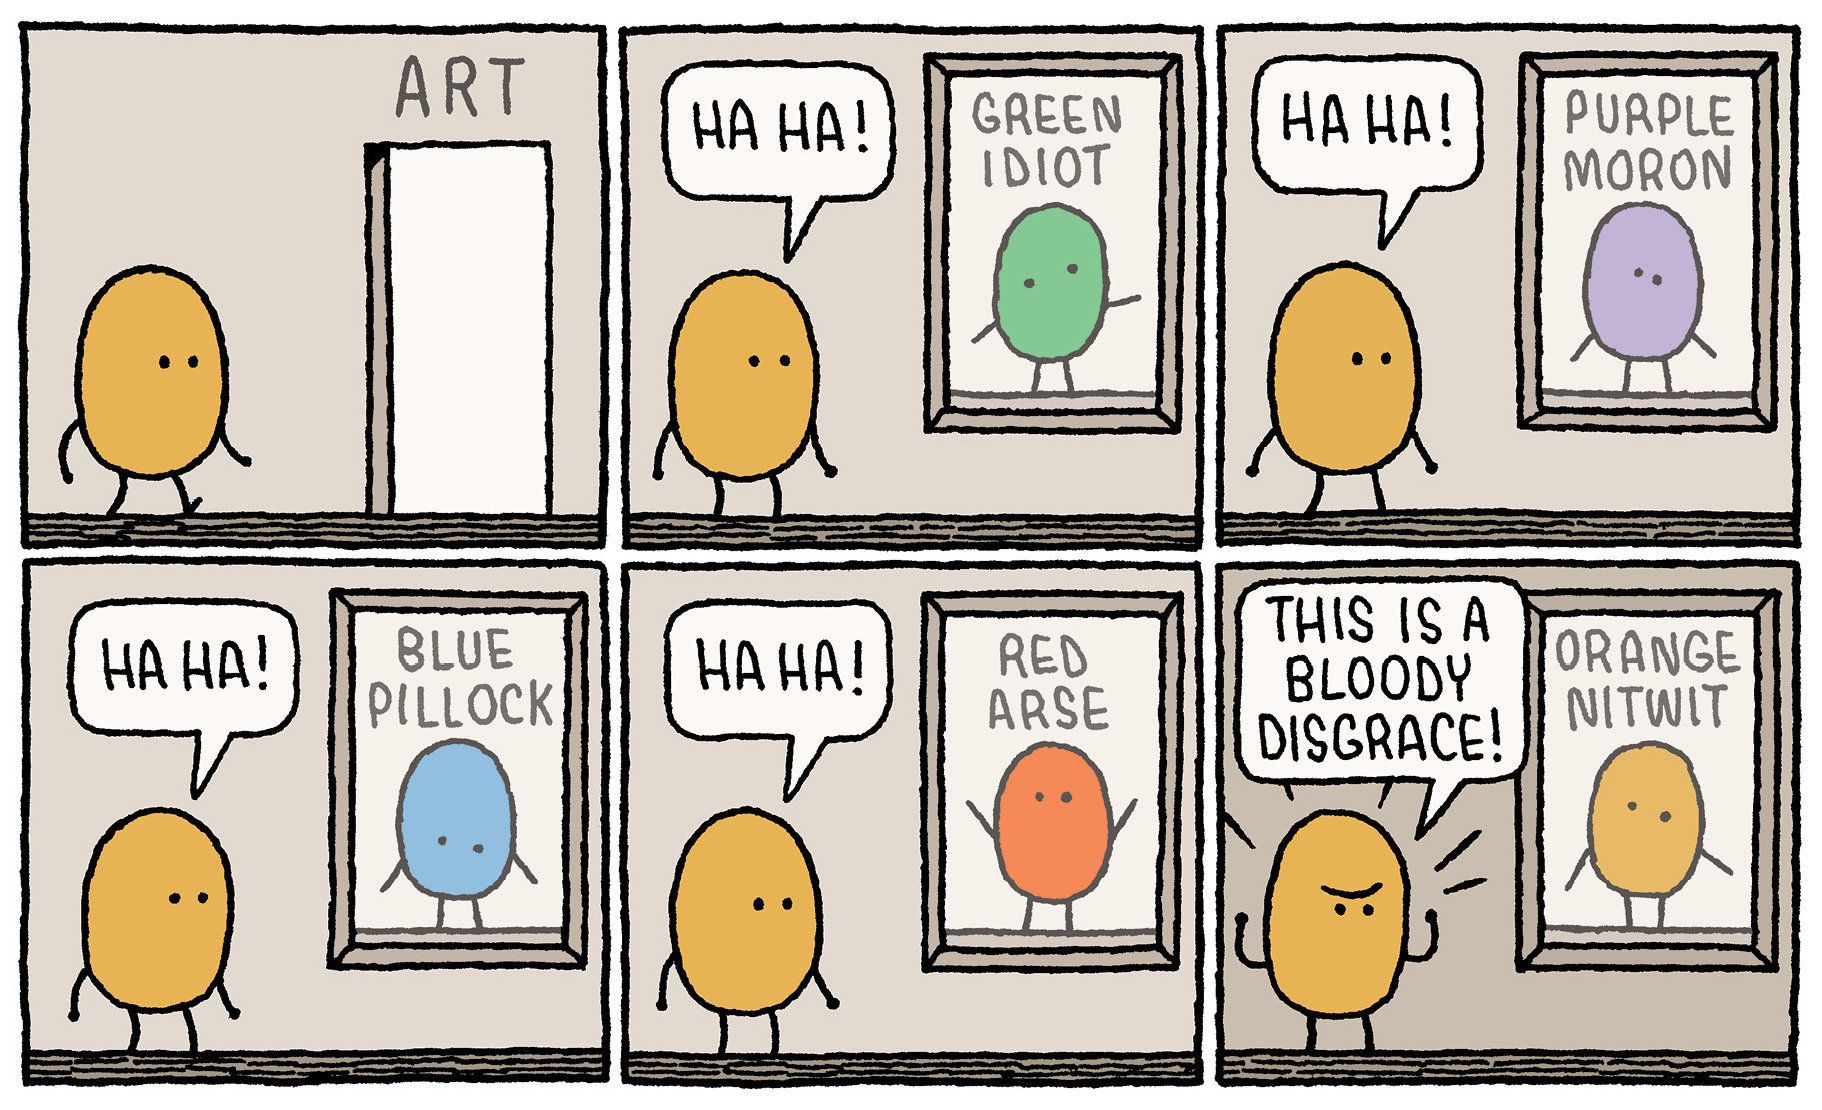 Tom Gauld's Deceptively Simple Comics Hold A Mirror To Human